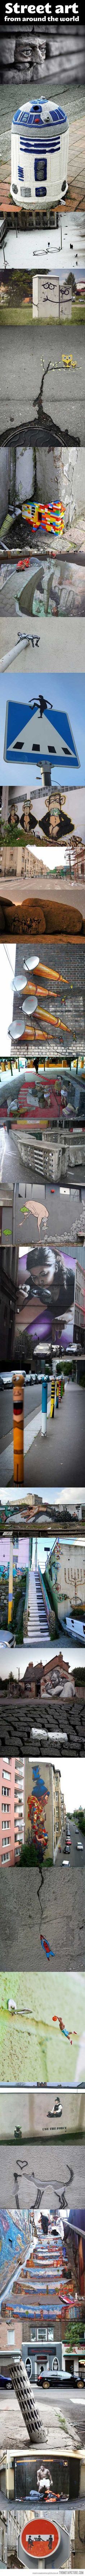 Street art from around the world…when you feel like there's no imagination, no humour, no laughter, no cleverness, no soul...it's everywhere.